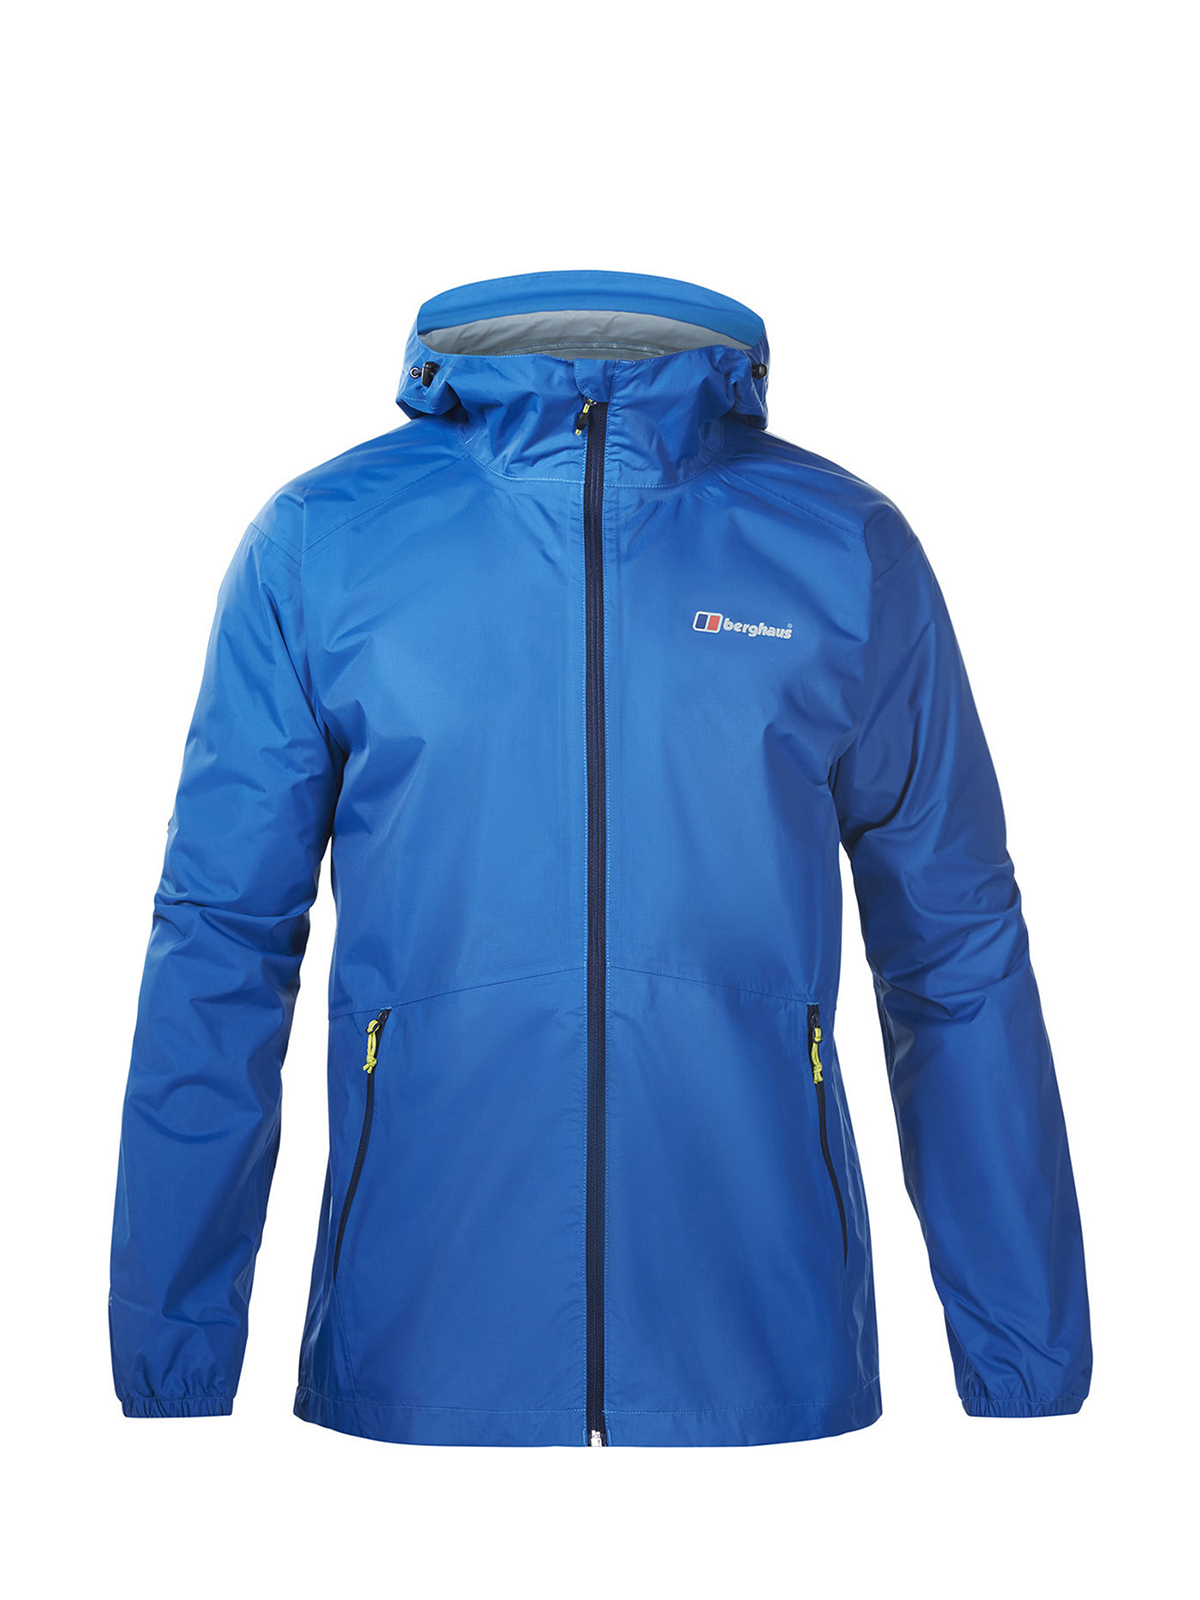 Berghaus Mens Deluge Light Waterproof Shell Jacket